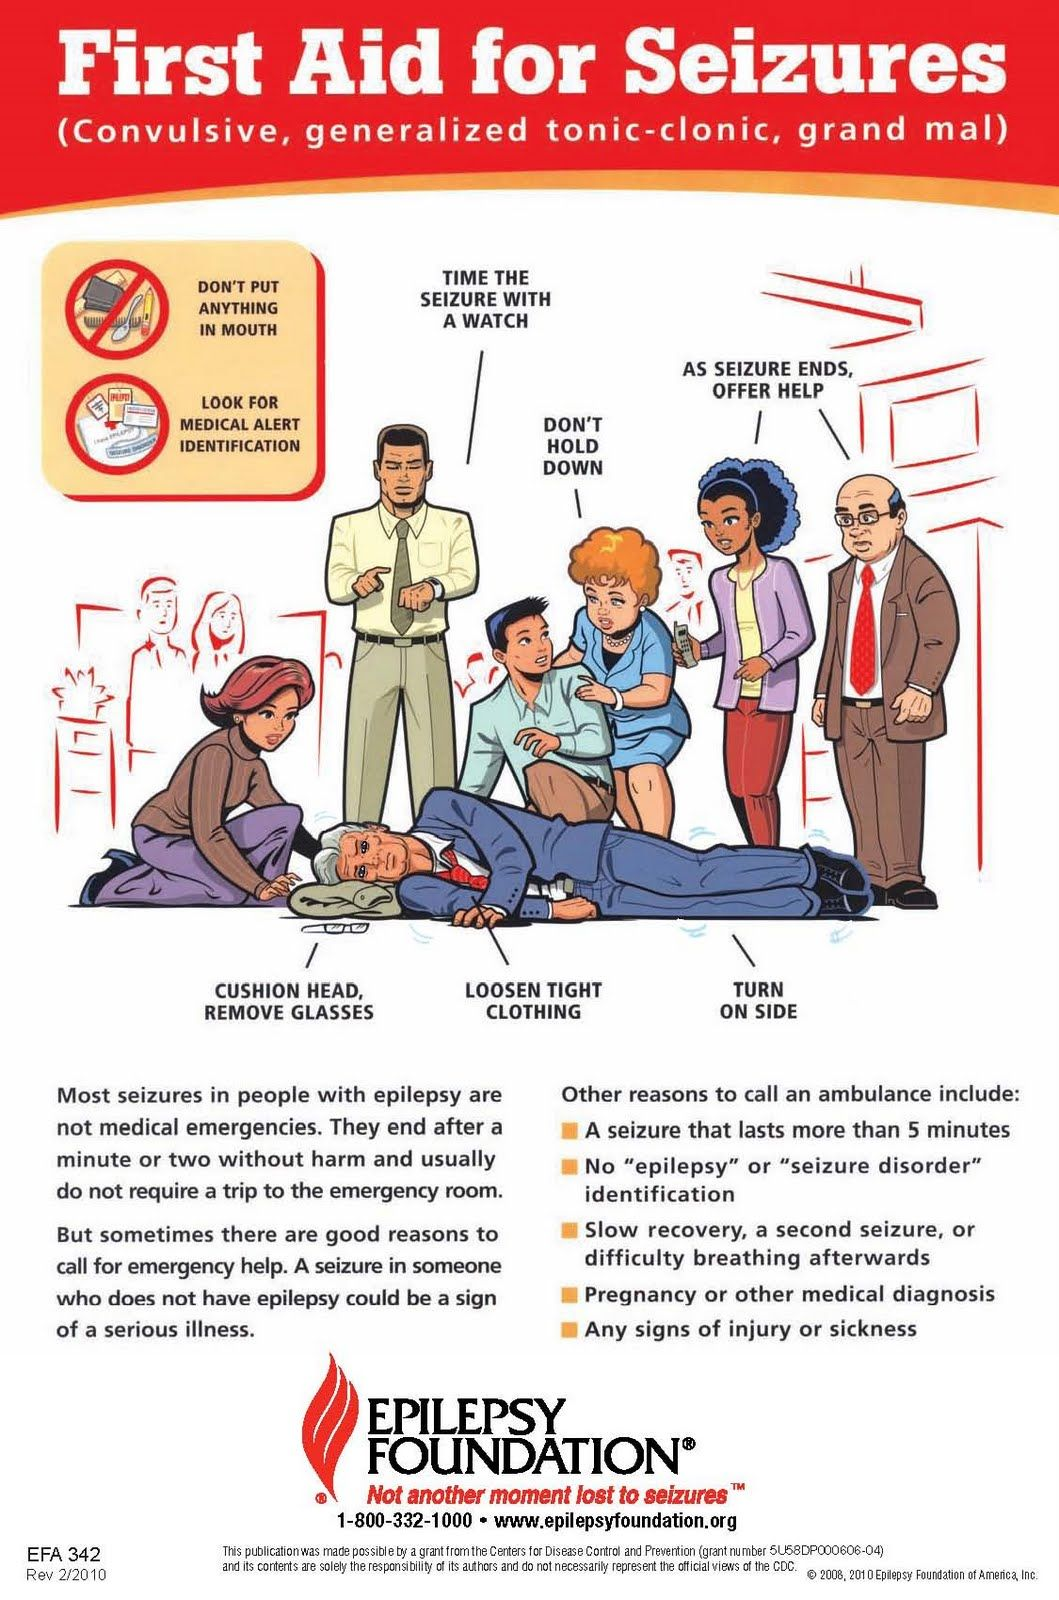 First Aid for Seizures IMPORTANT for everyone to know